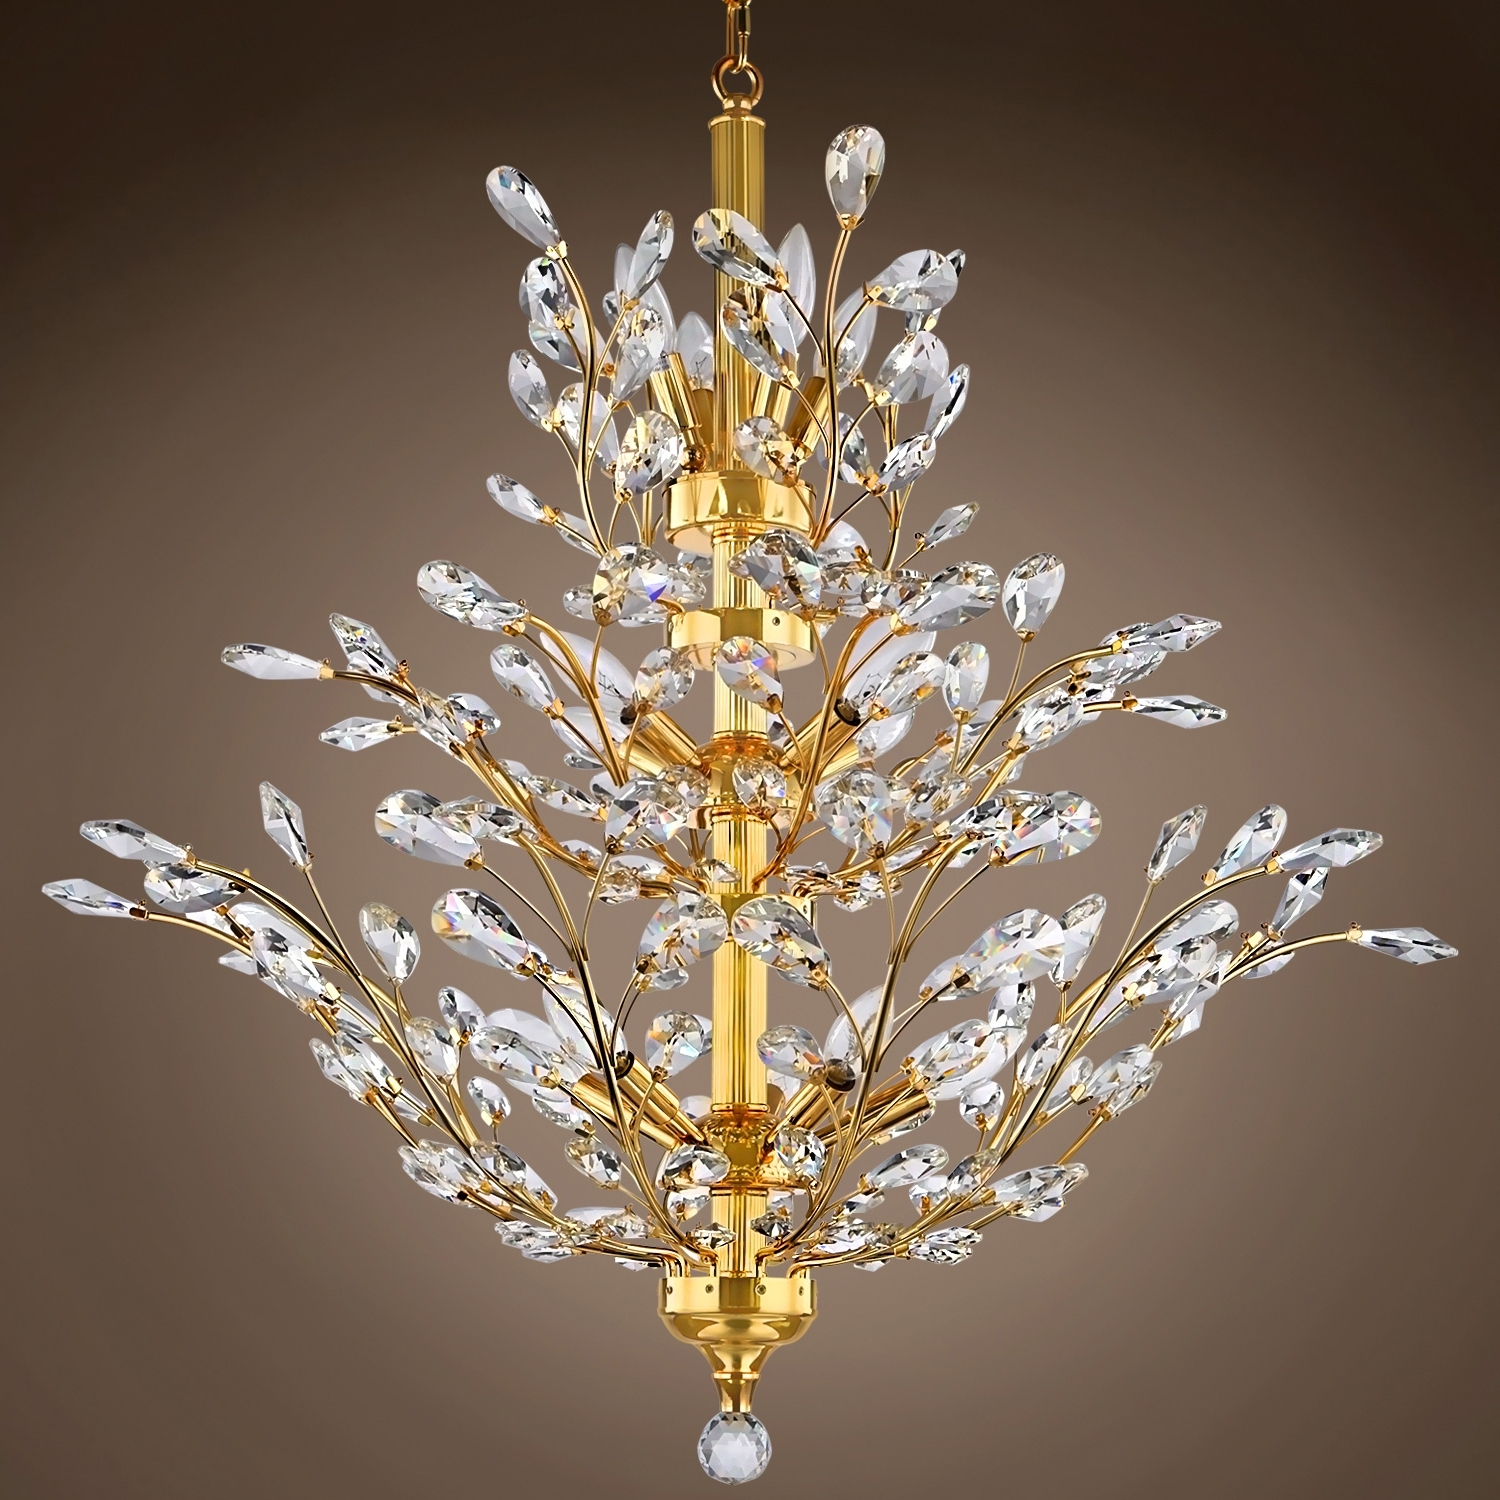 Branch Crystal Chandelier For Most Recent Joshua Marshal 700861 Branch Of Light 10 Light Gold Chandelier With (View 7 of 20)